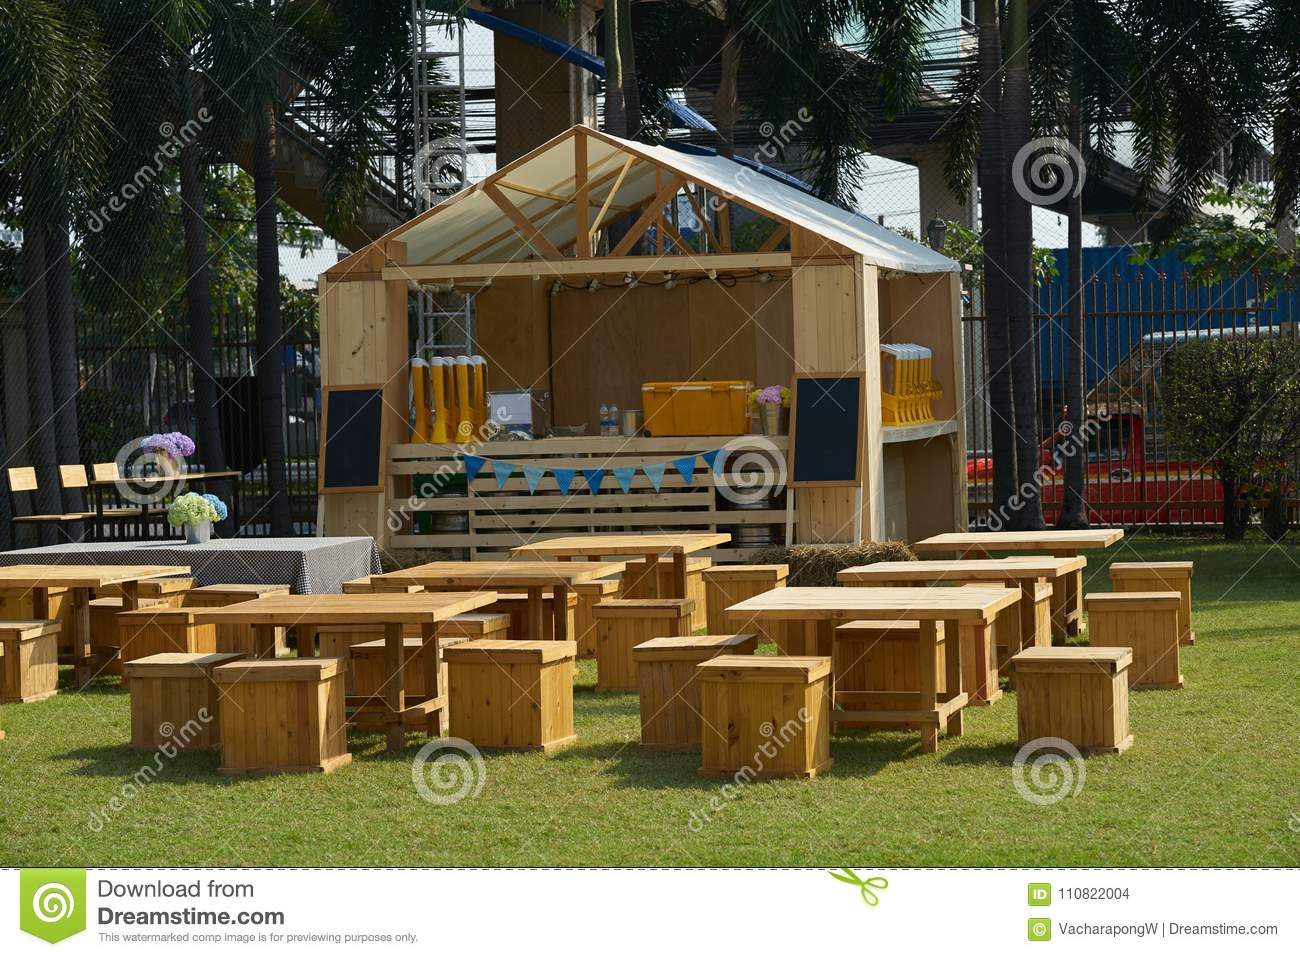 Outdoors restaurant tables and chairs and counter front in grass